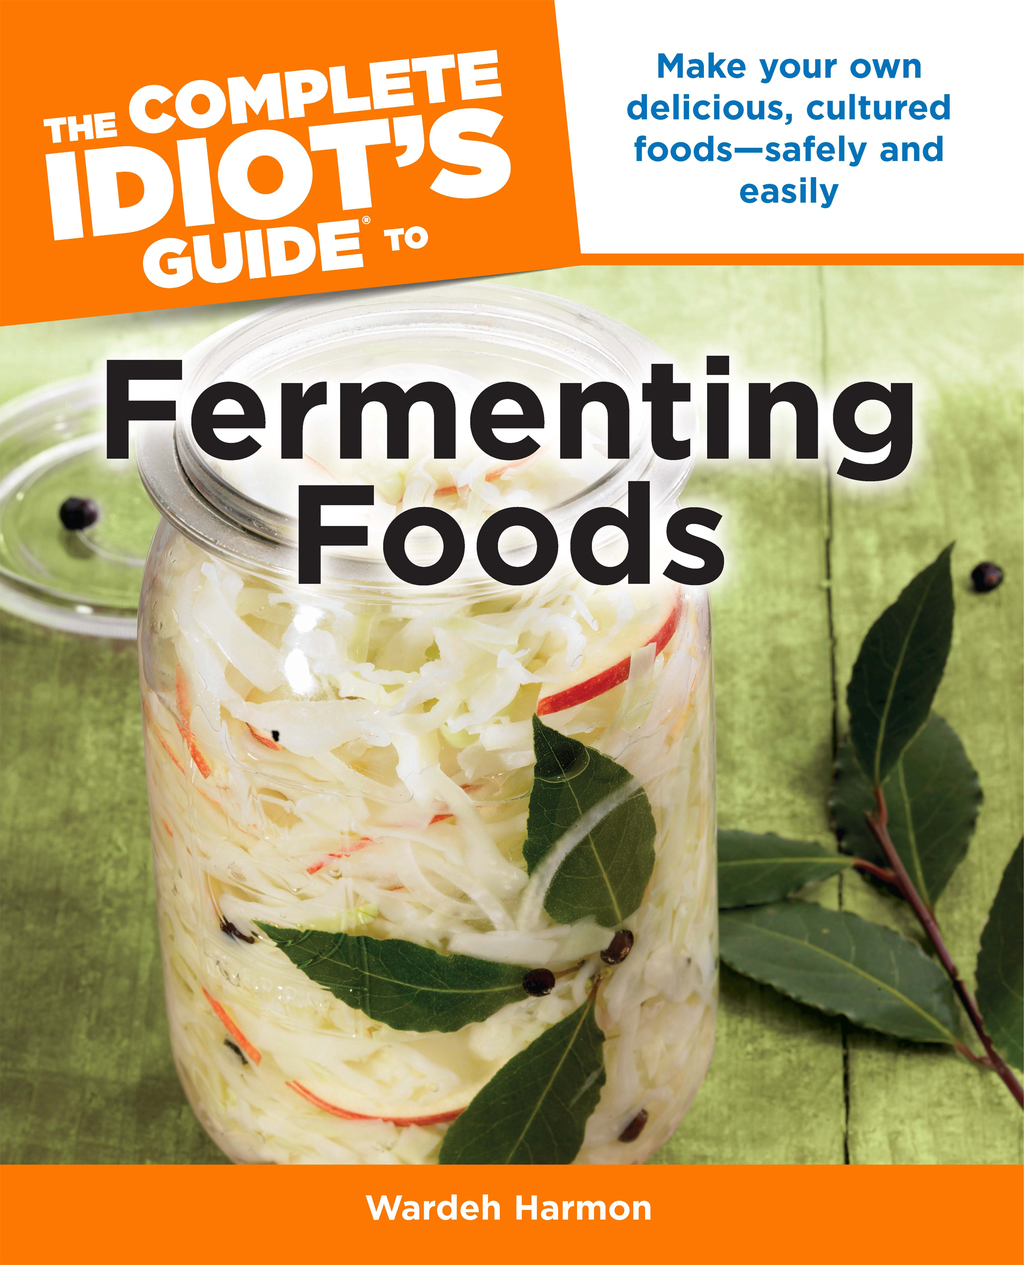 The Complete Idiot's Guide to Fermenting Foods By: Wardeh Harmon